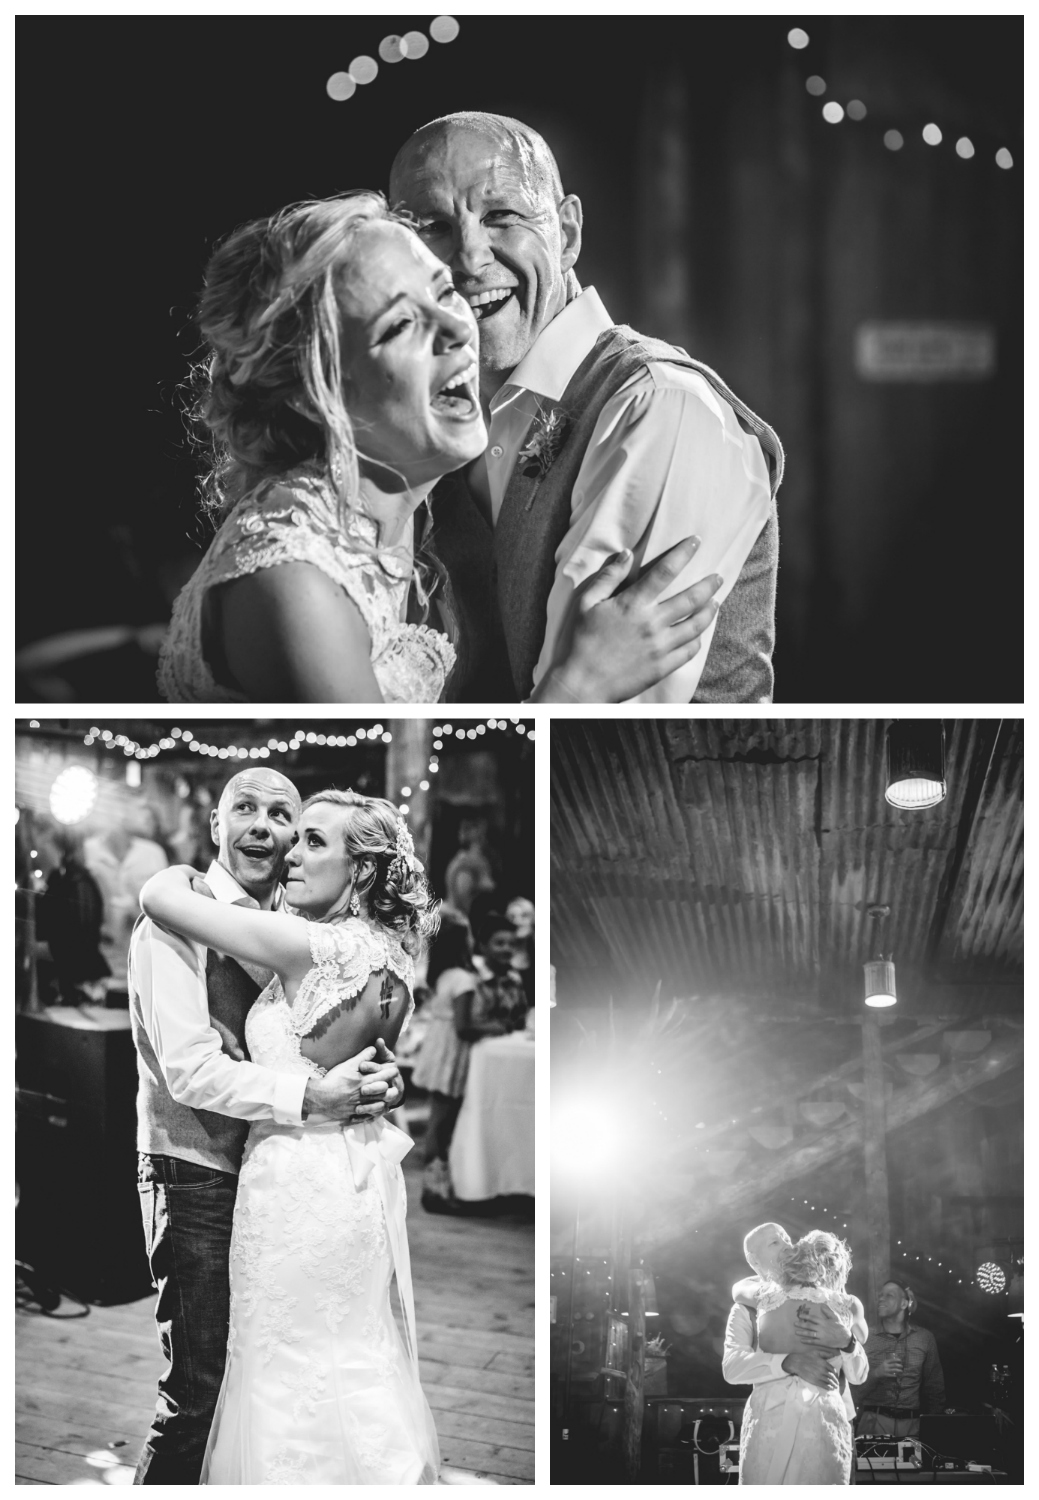 Father daughter dance. Wedding at The barn at Evergreen Memorial. Photographed by JMGant Photography.